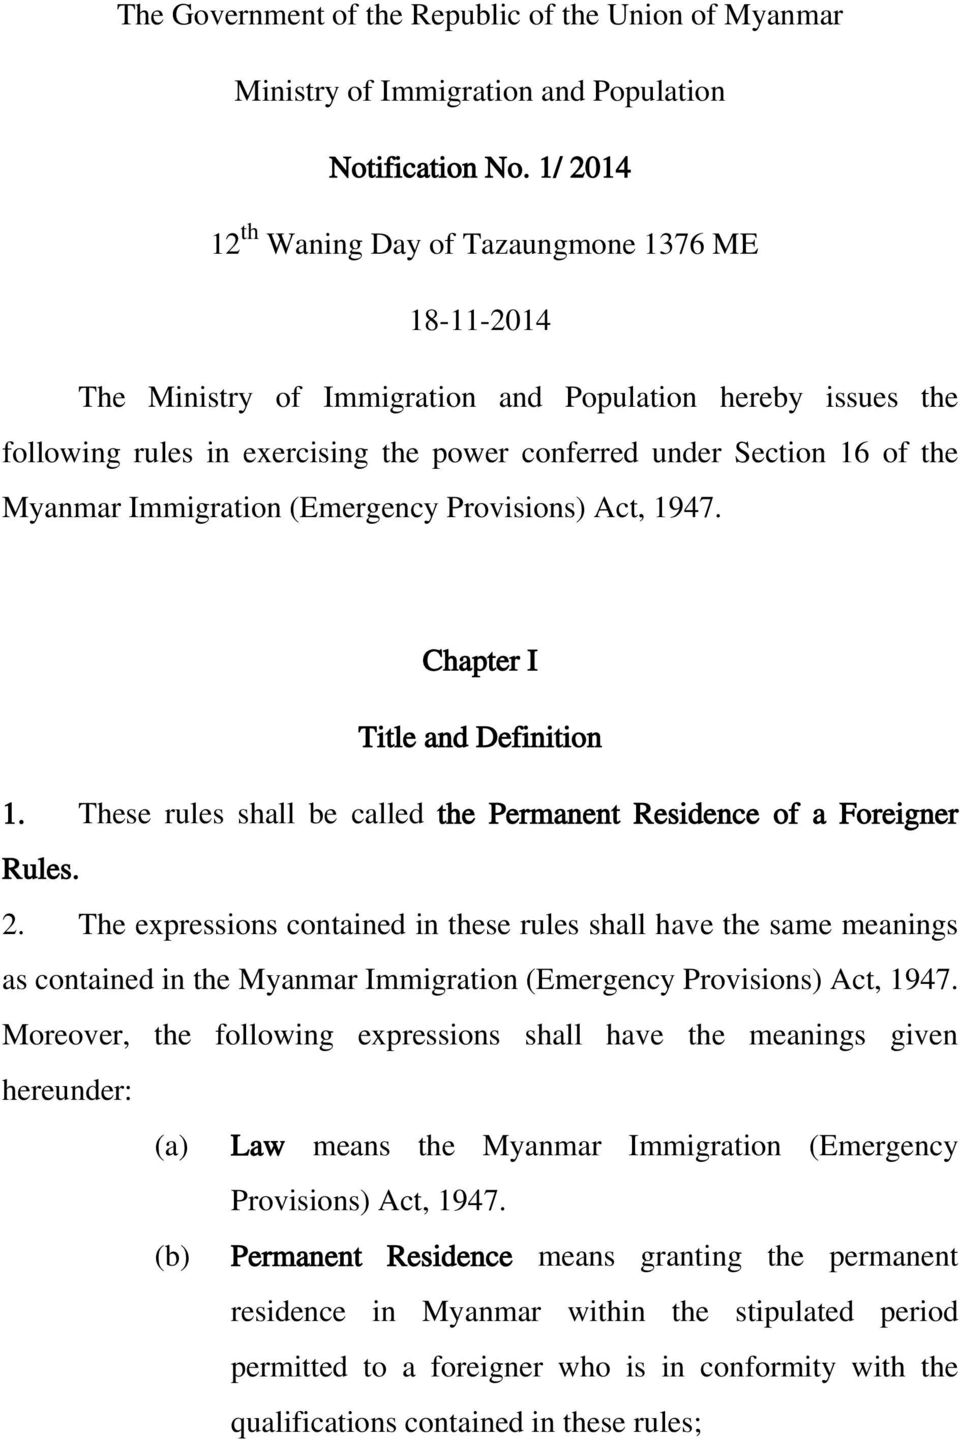 Myanmar Immigration (Emergency Provisions) Act, 1947. Chapter I Title and Definition 1. These rules shall be called the Permanent Residence of a Foreigner Rules. 2.